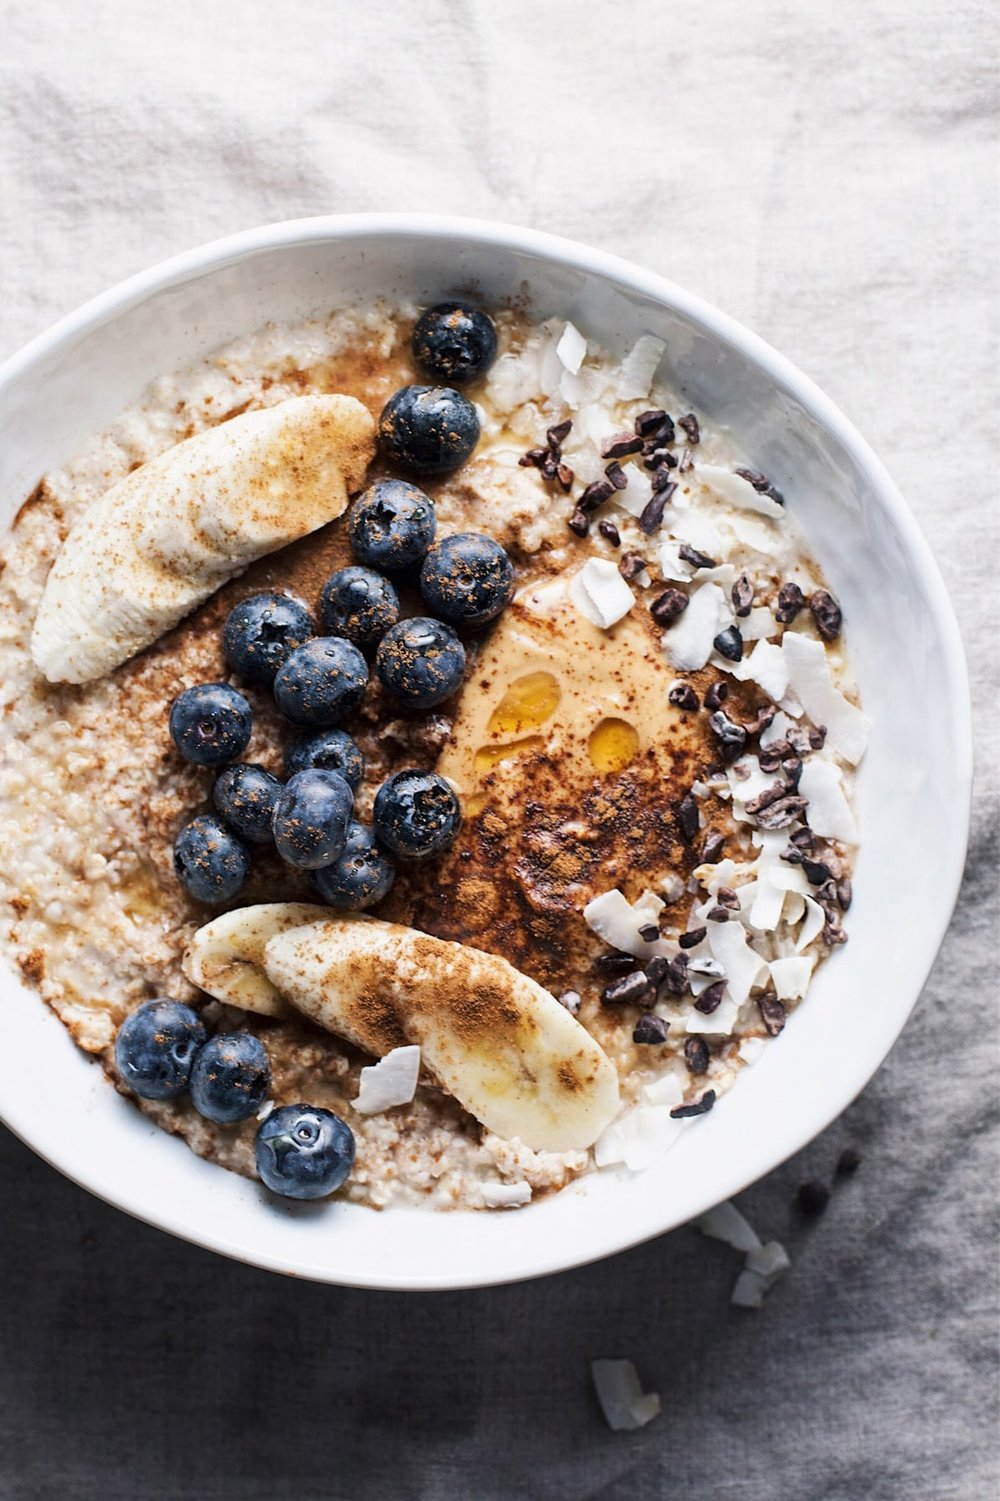 Nourishing Oatmeal Breakfast Bowl from A Simple Palate